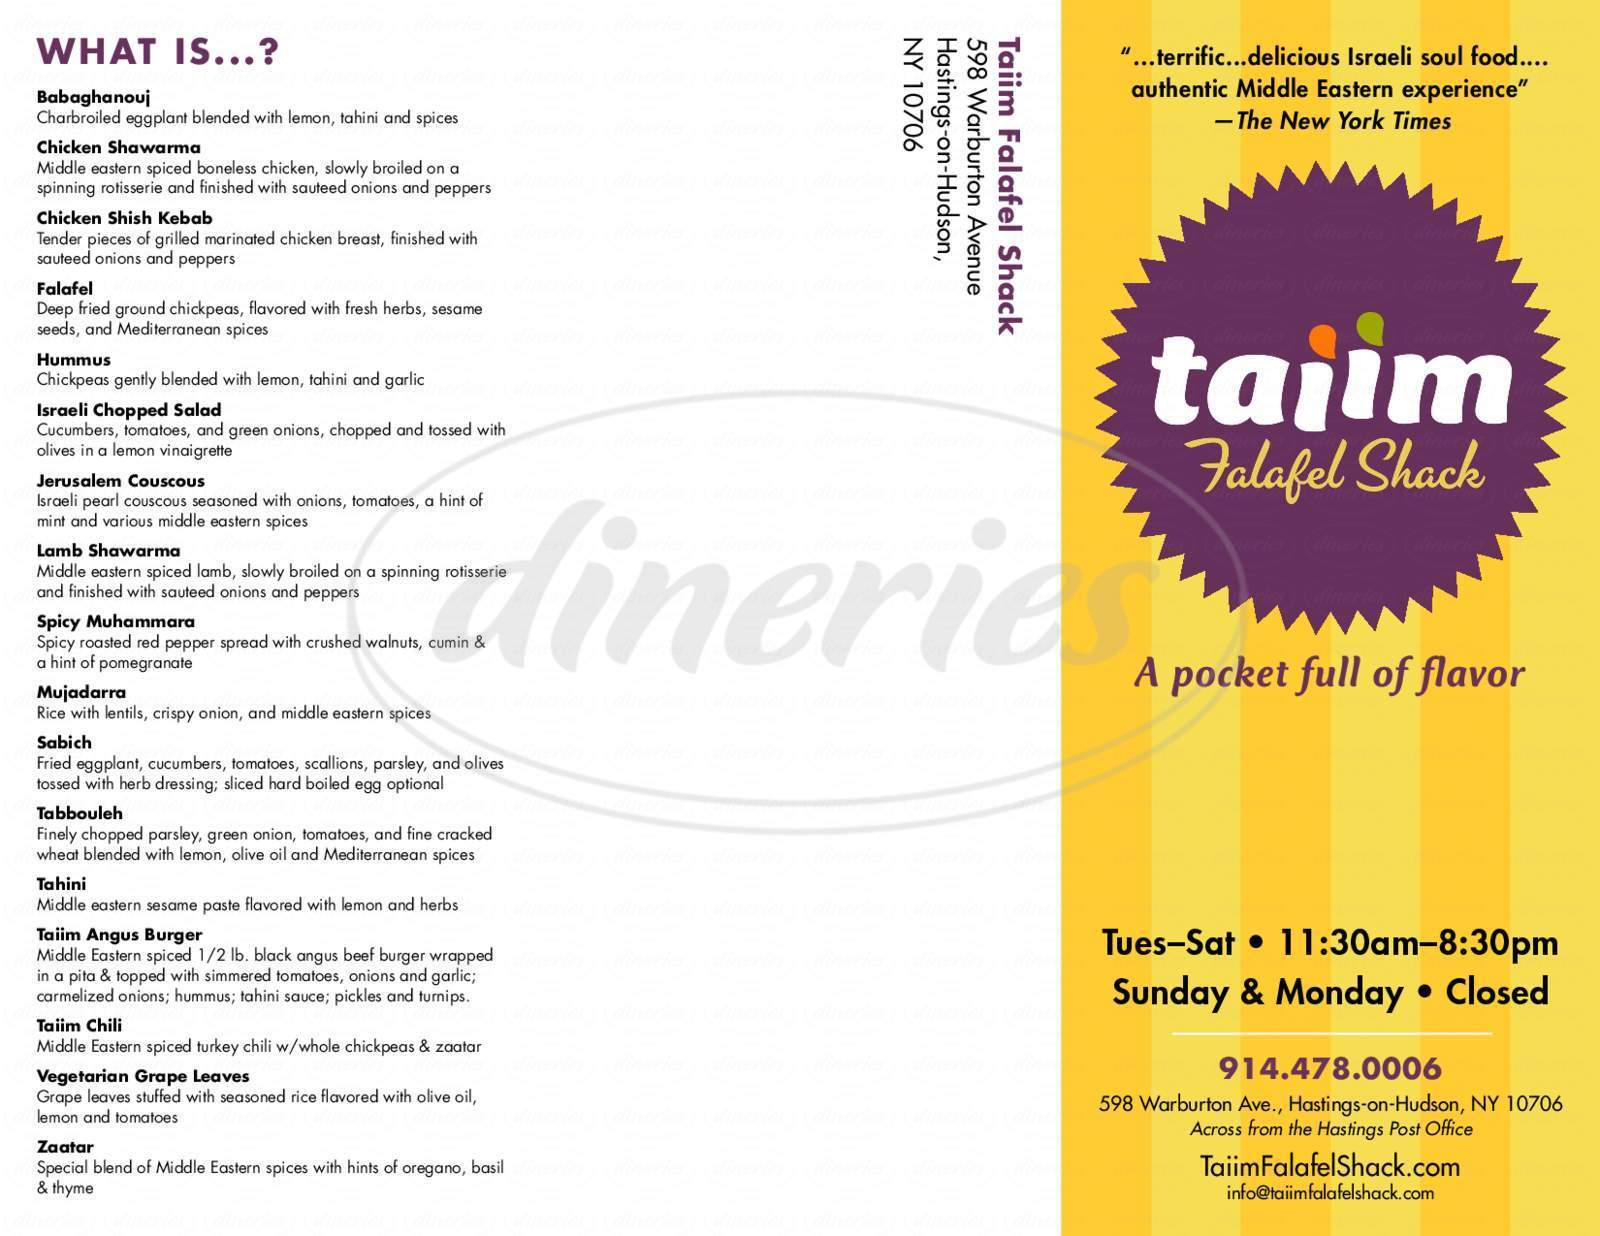 menu for Taiim Falafel Shack